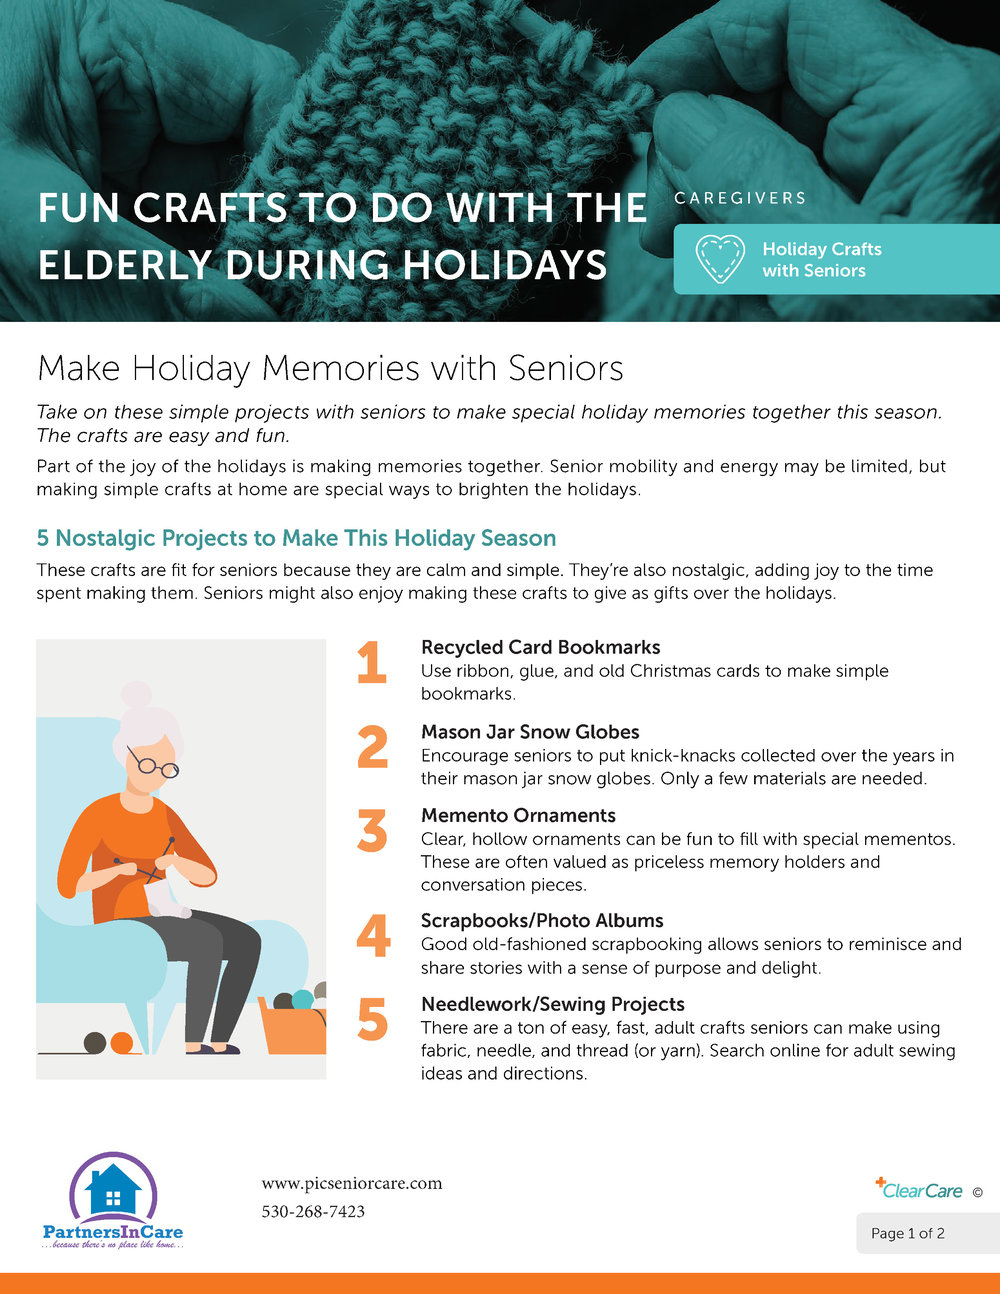 Fun Crafts To Do With The Elderly During Holidays page 1